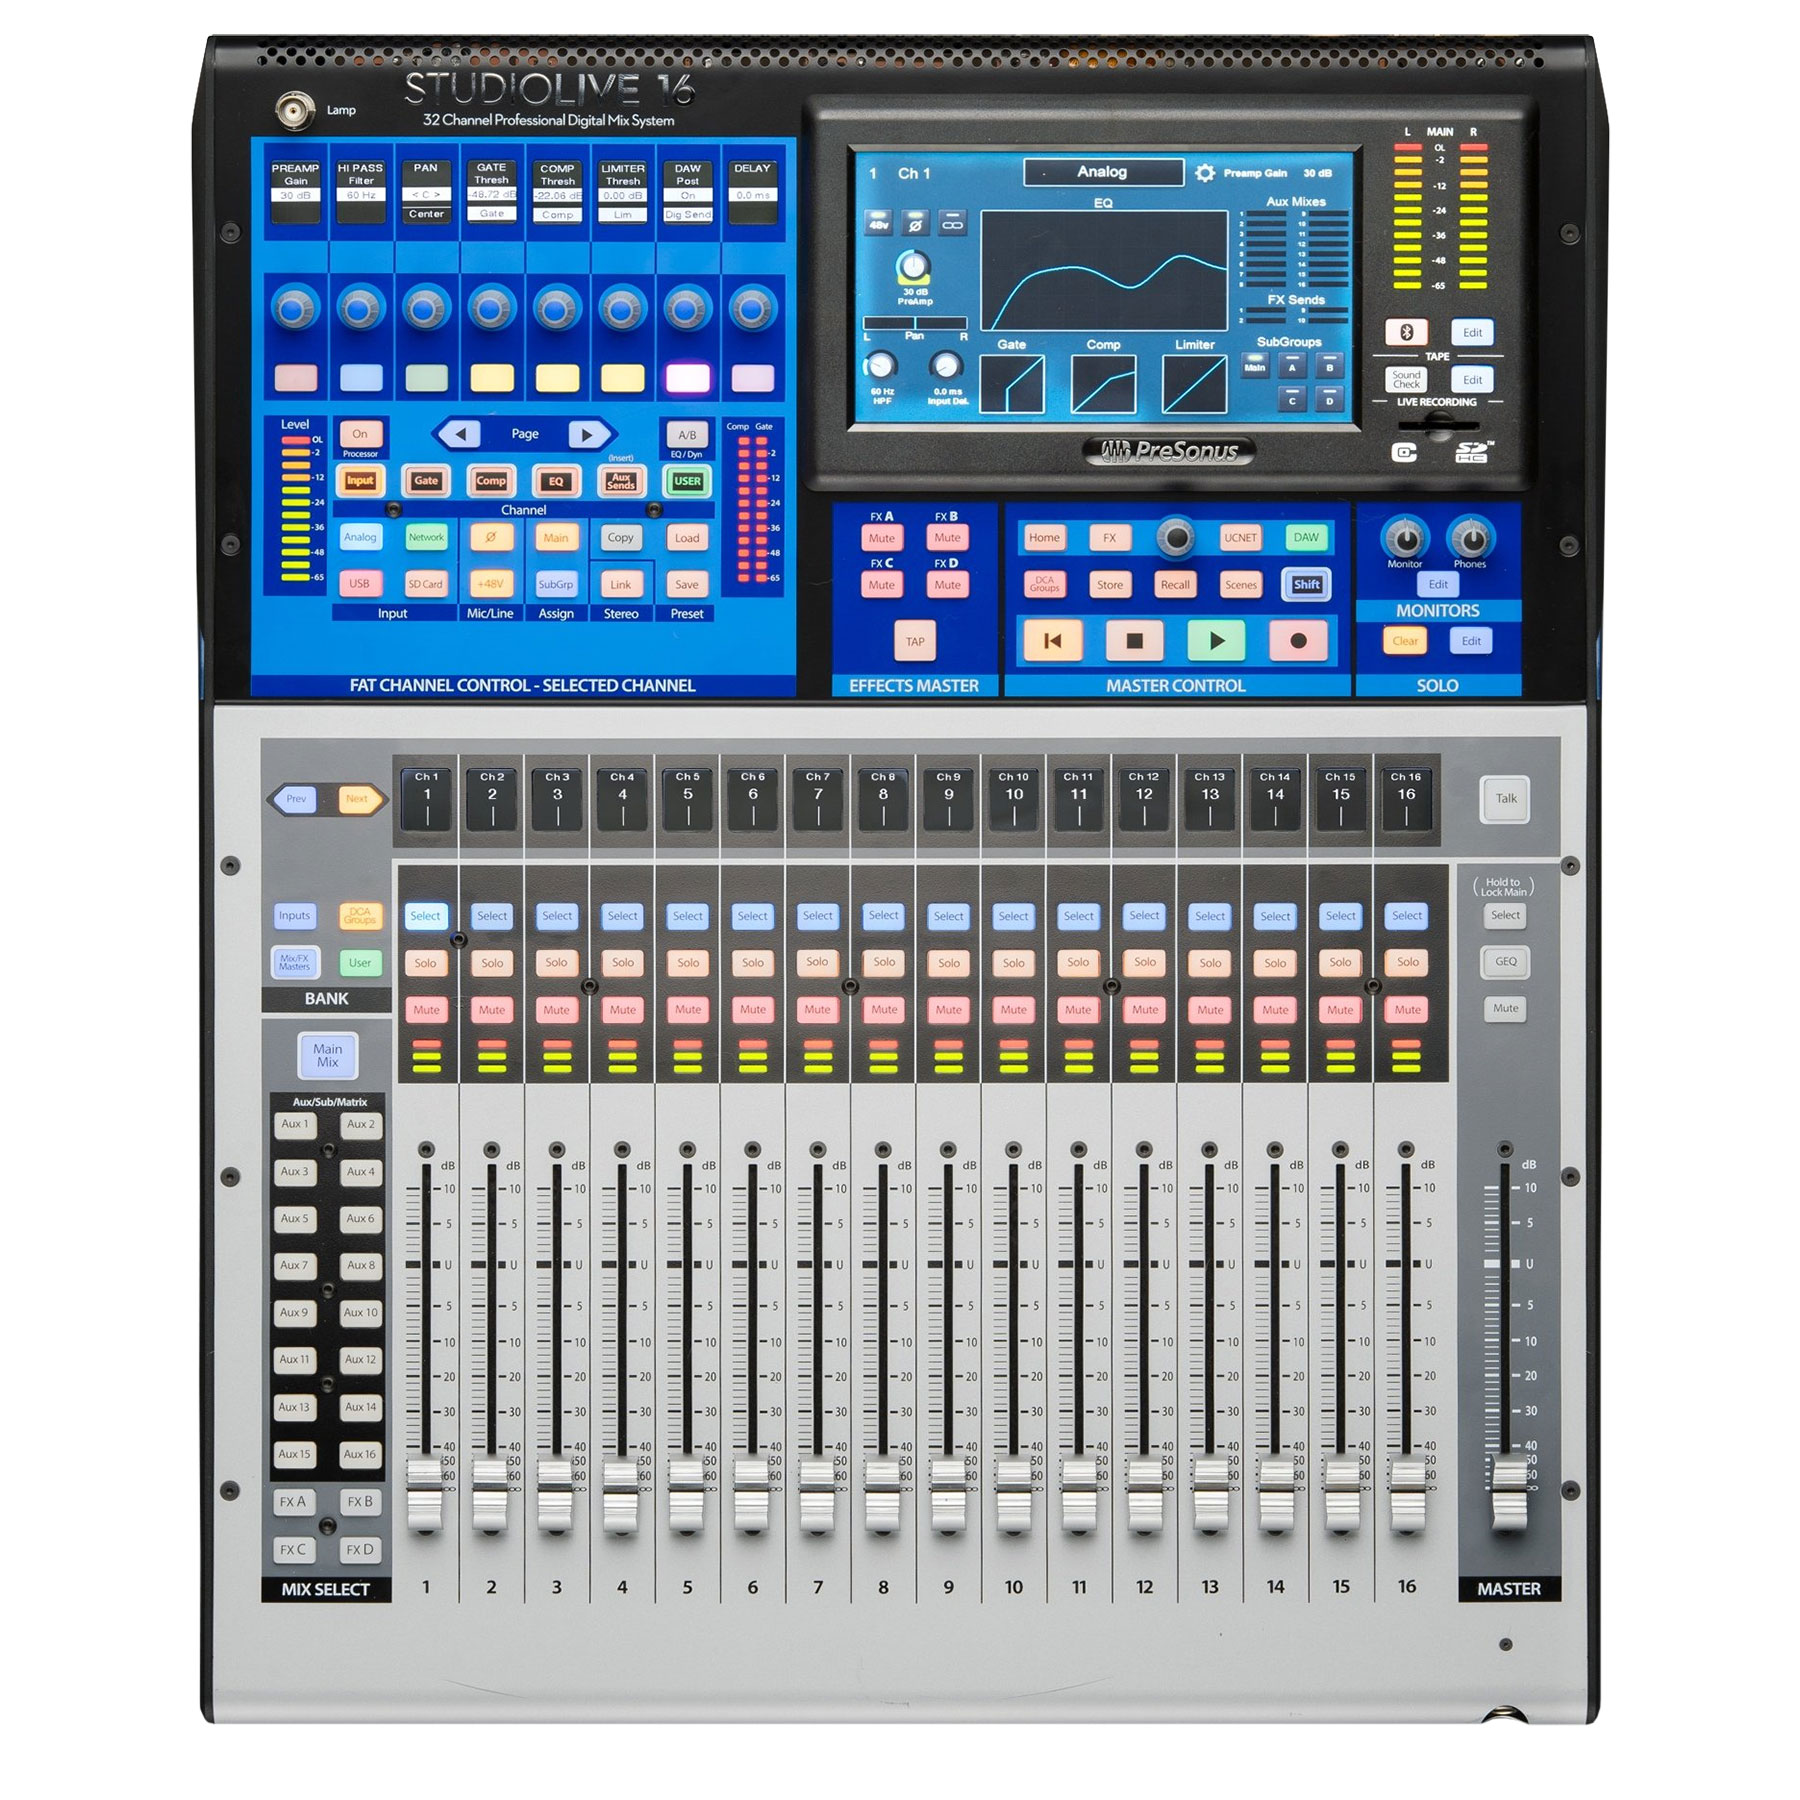 PreSonus 16-Channel Digital Mixer with Touch-Sensitive Moving Faders